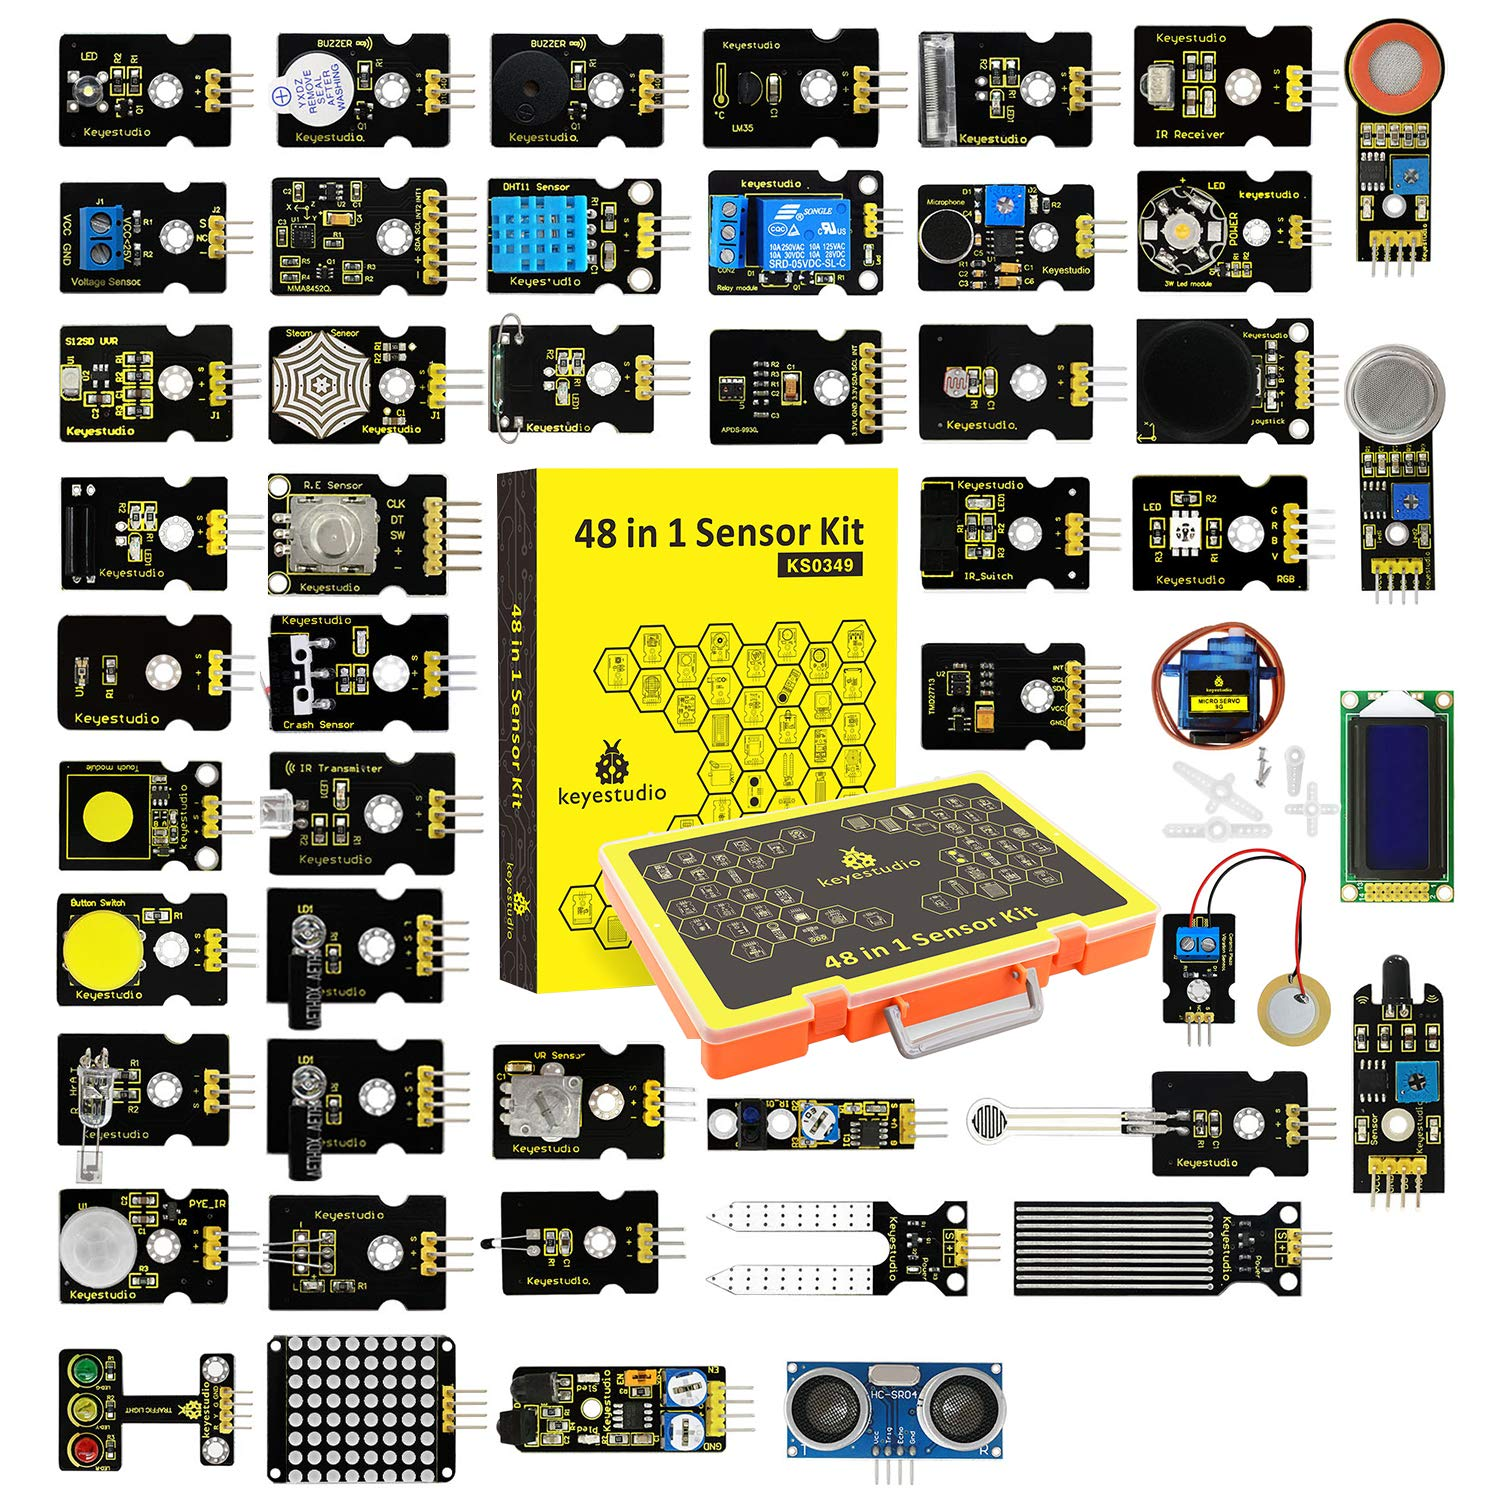 KEYESTUDIO 48 in 1 Sensor kit for arduino Projects with LCD, 5v Relay, IR Receiver, Line Tracking, Traffic Light, 9G Servo Motor Module, PIR, Reed Switch, Flame, Ultrasonic Sensor, etc